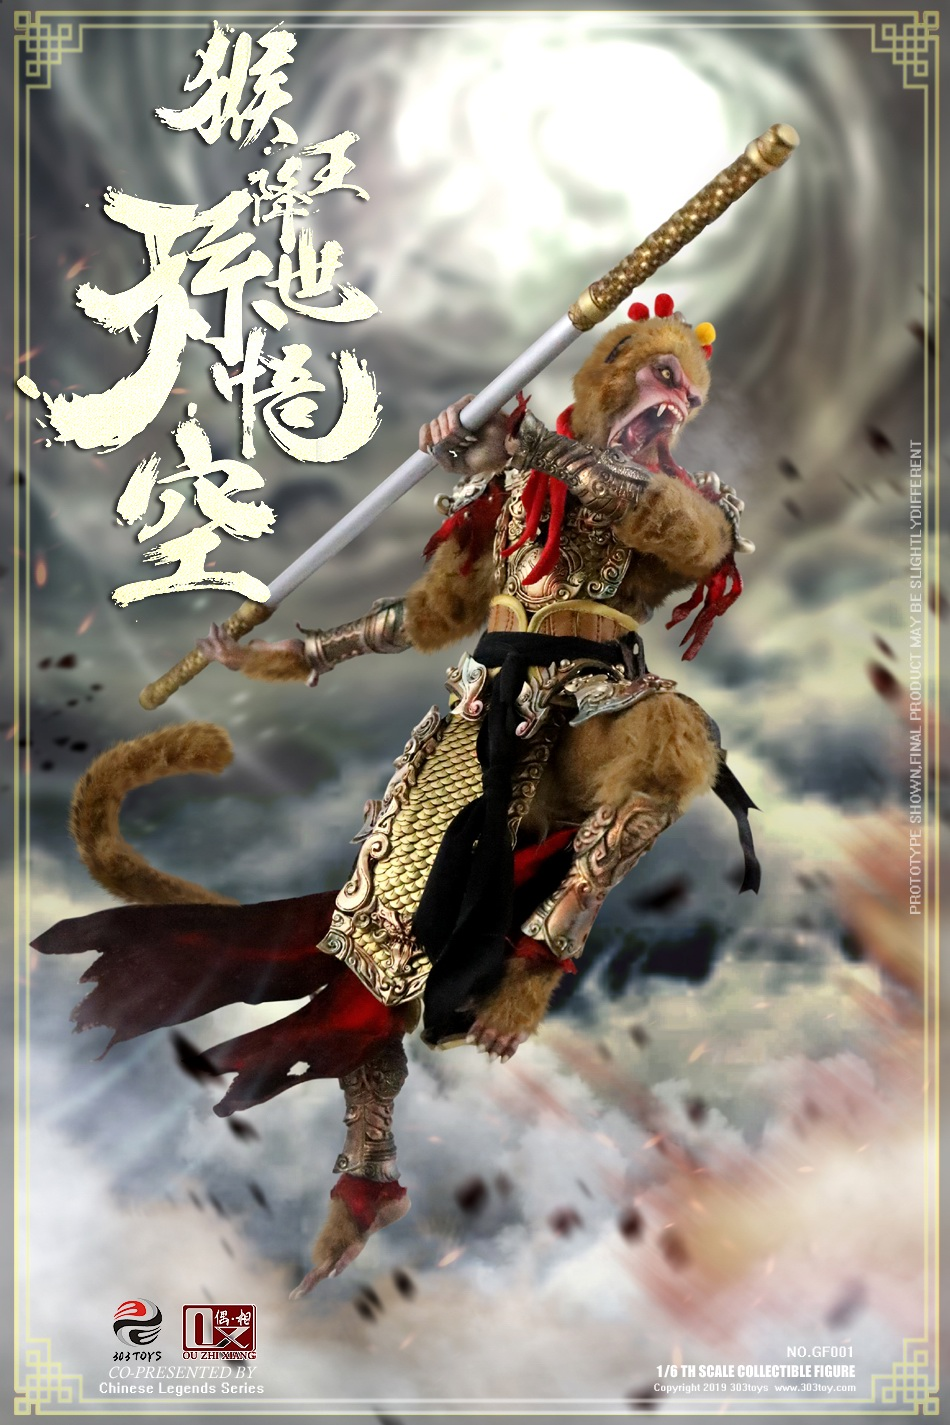 EveningPhase - NEW PRODUCT: 303TOYS x Evening phase: 1/6 National Wind Legend Series - Sun Wukong Monkey King Apocalypse & Dasheng Qitian & Stepping 18065310